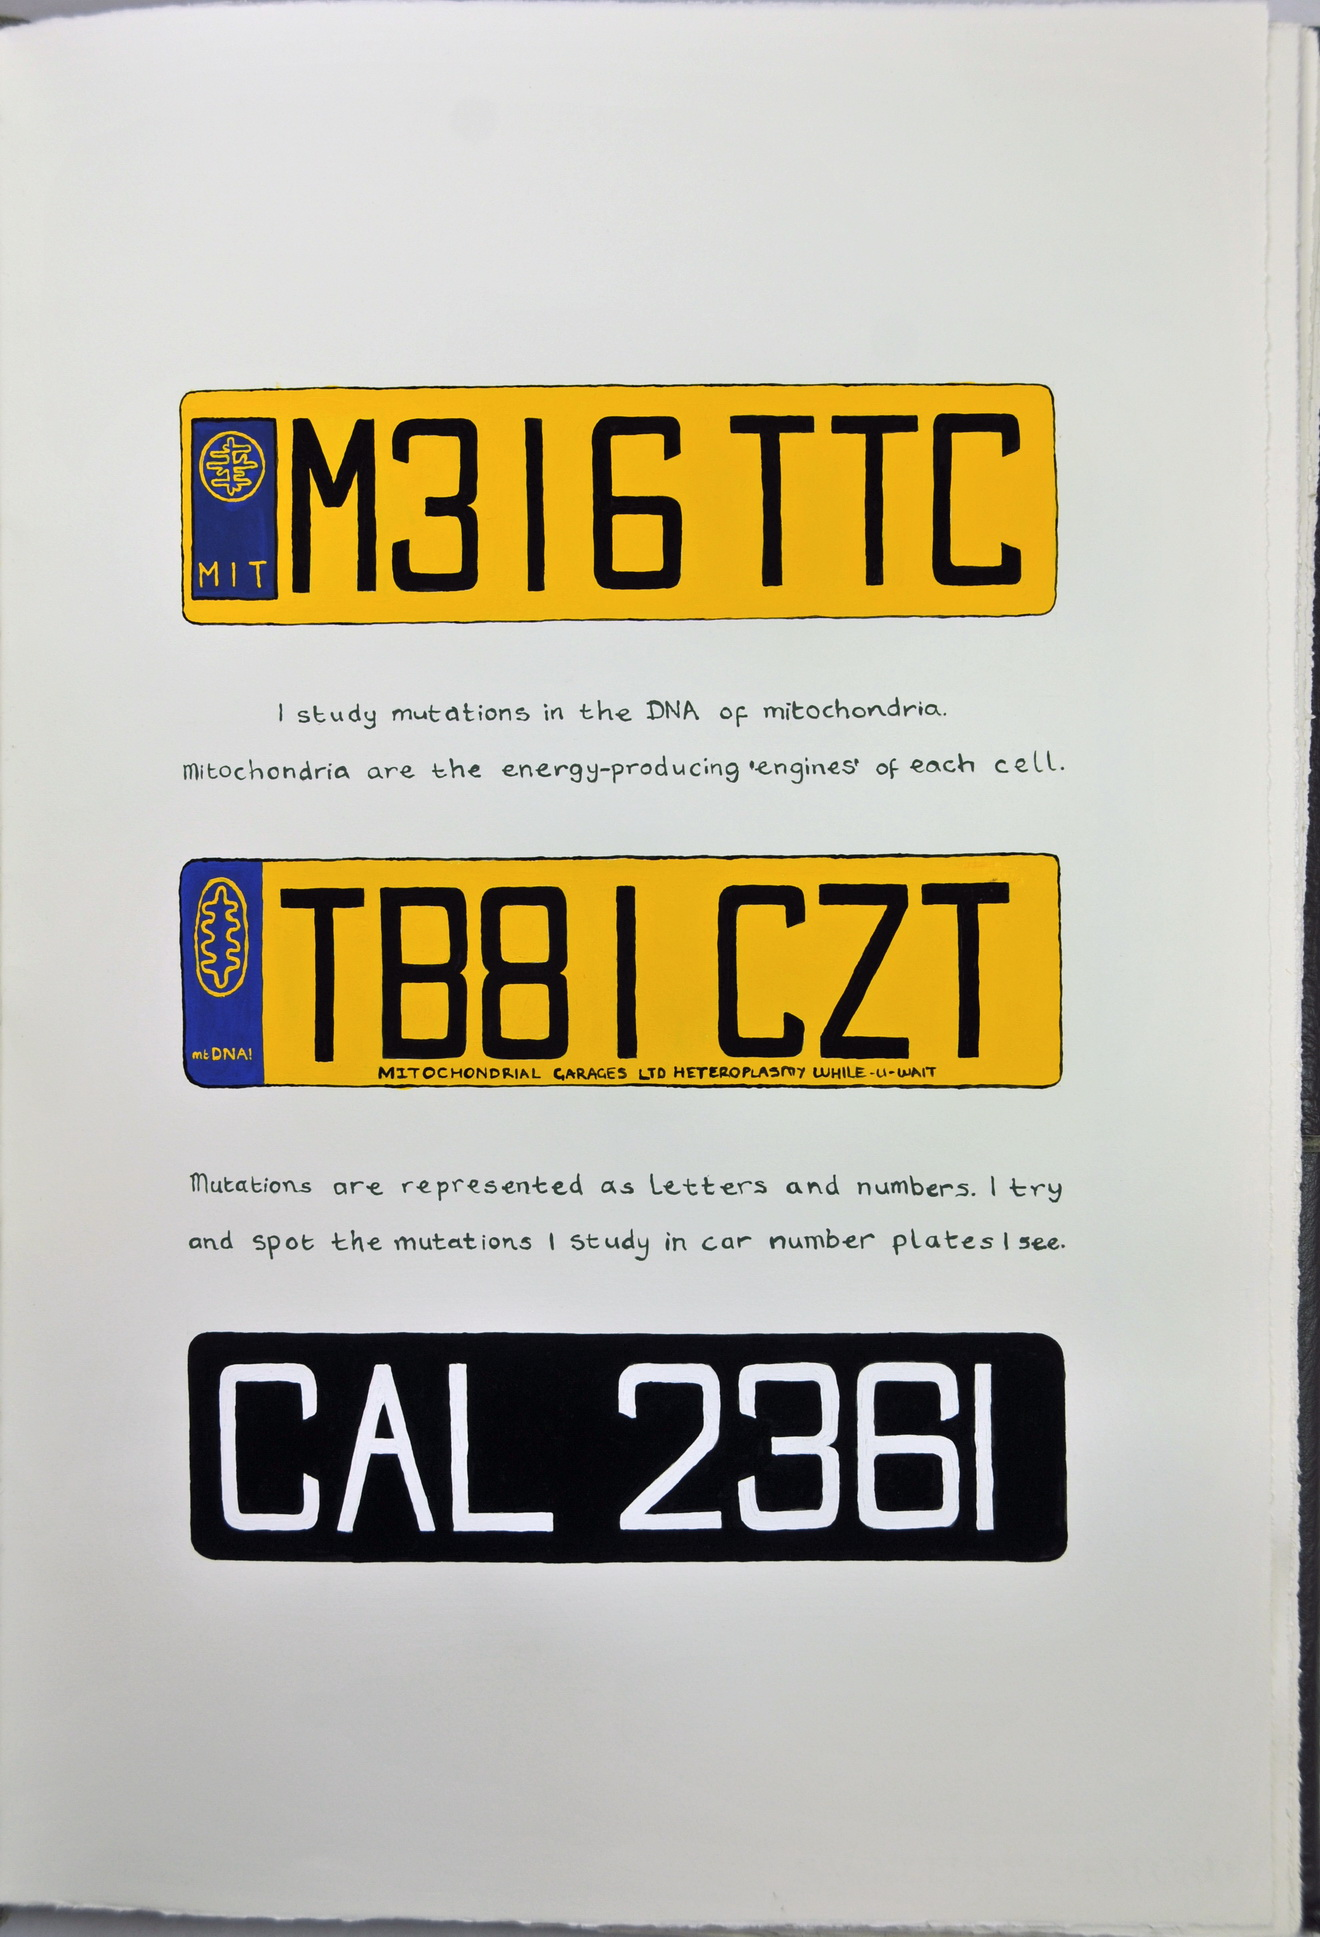 08_Chp2-The-Art-of-Travel_P2_Number_Plates_resize.jpg